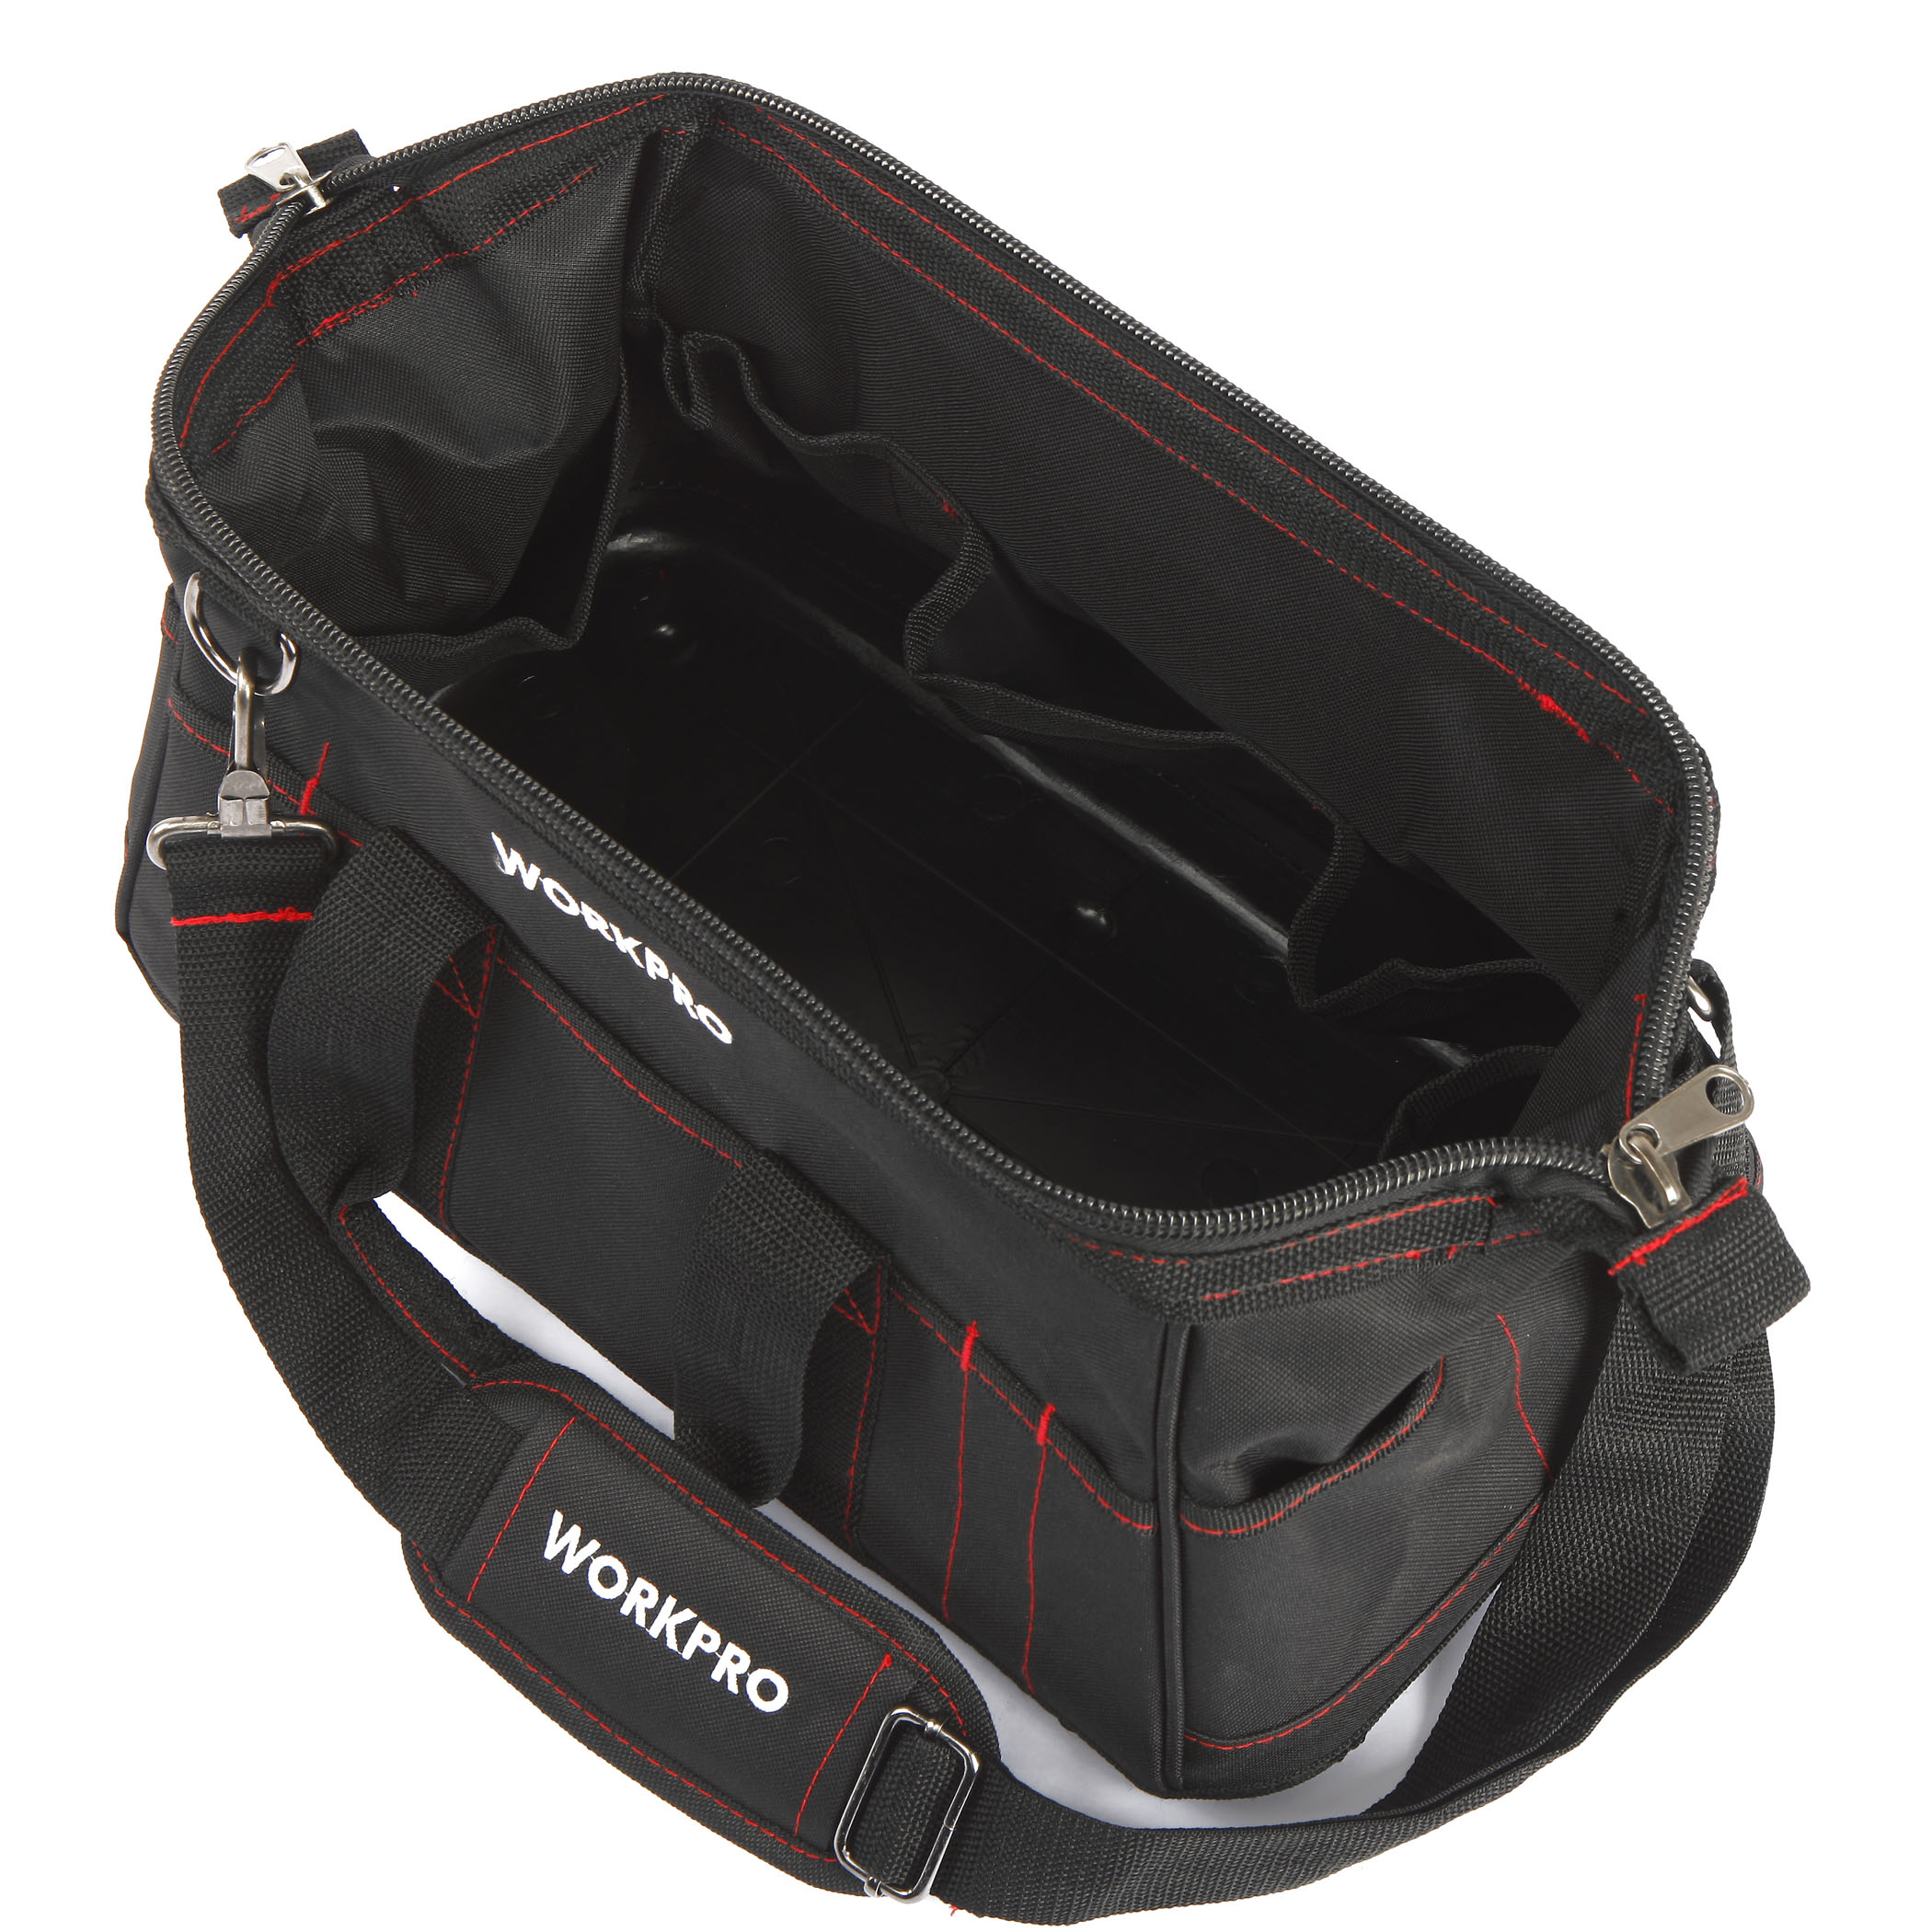 WORKPRO 16 inch Tool Bag Men 39 s Tool Kits Bag Electrician Tool Bag in Tool Bags from Tools